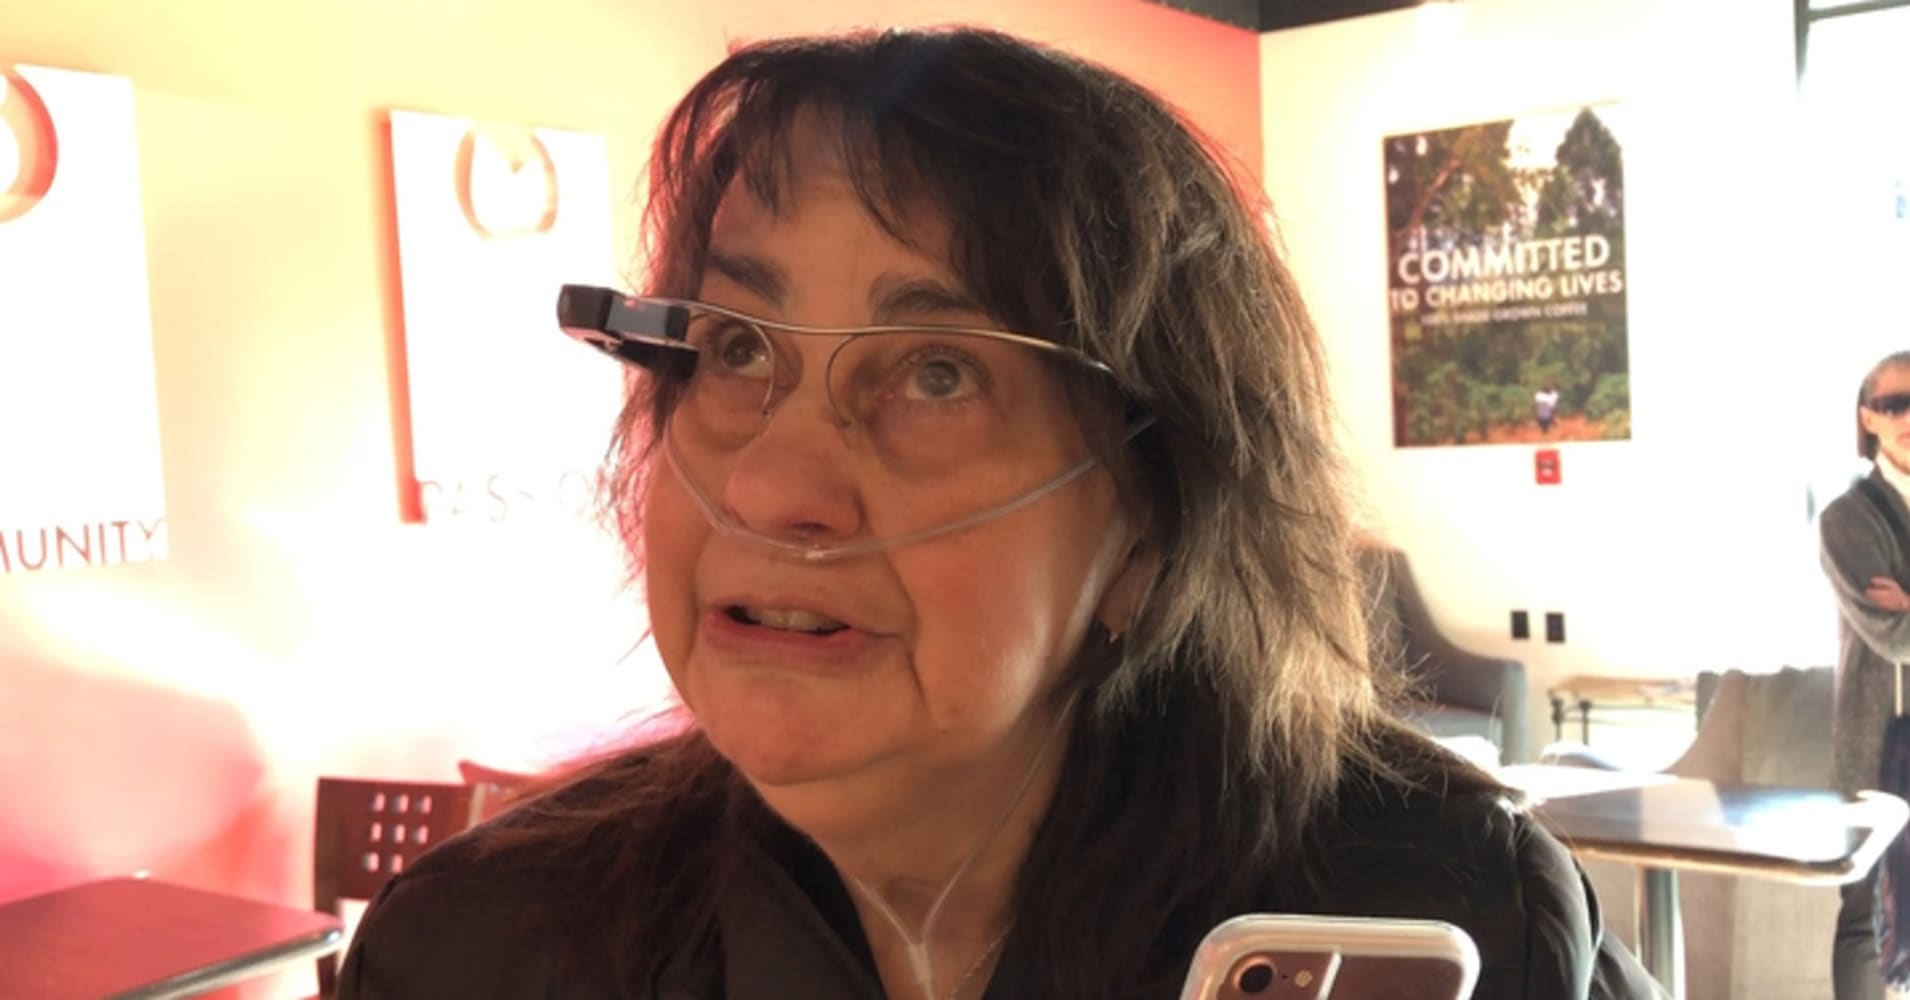 How this Google Glass app is providing digital assistance to my blind aunt